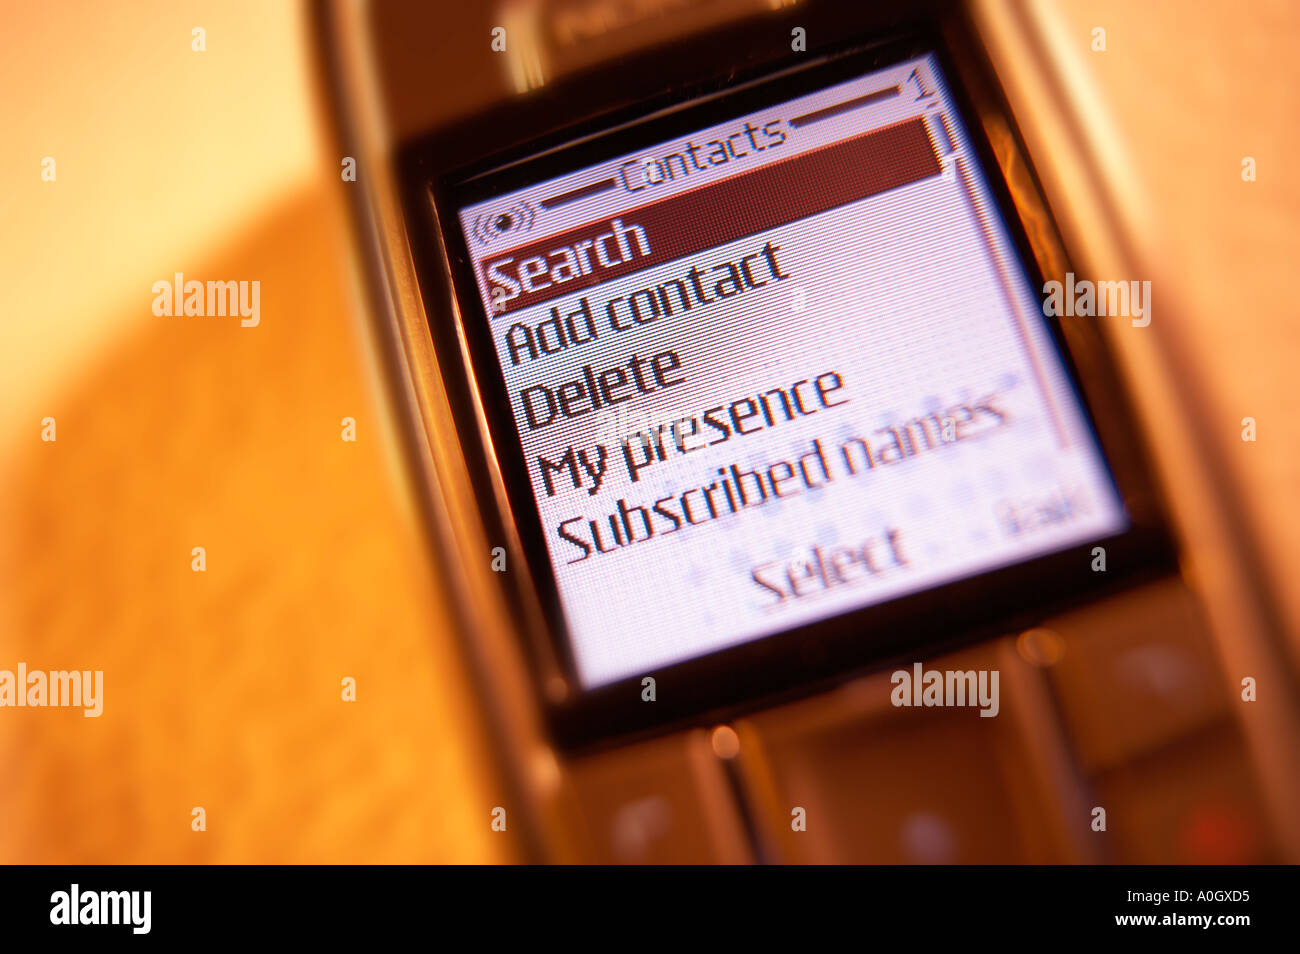 SEARCH CONTACTS MENU ON MOBILE PHONE SCREEN - Stock Image